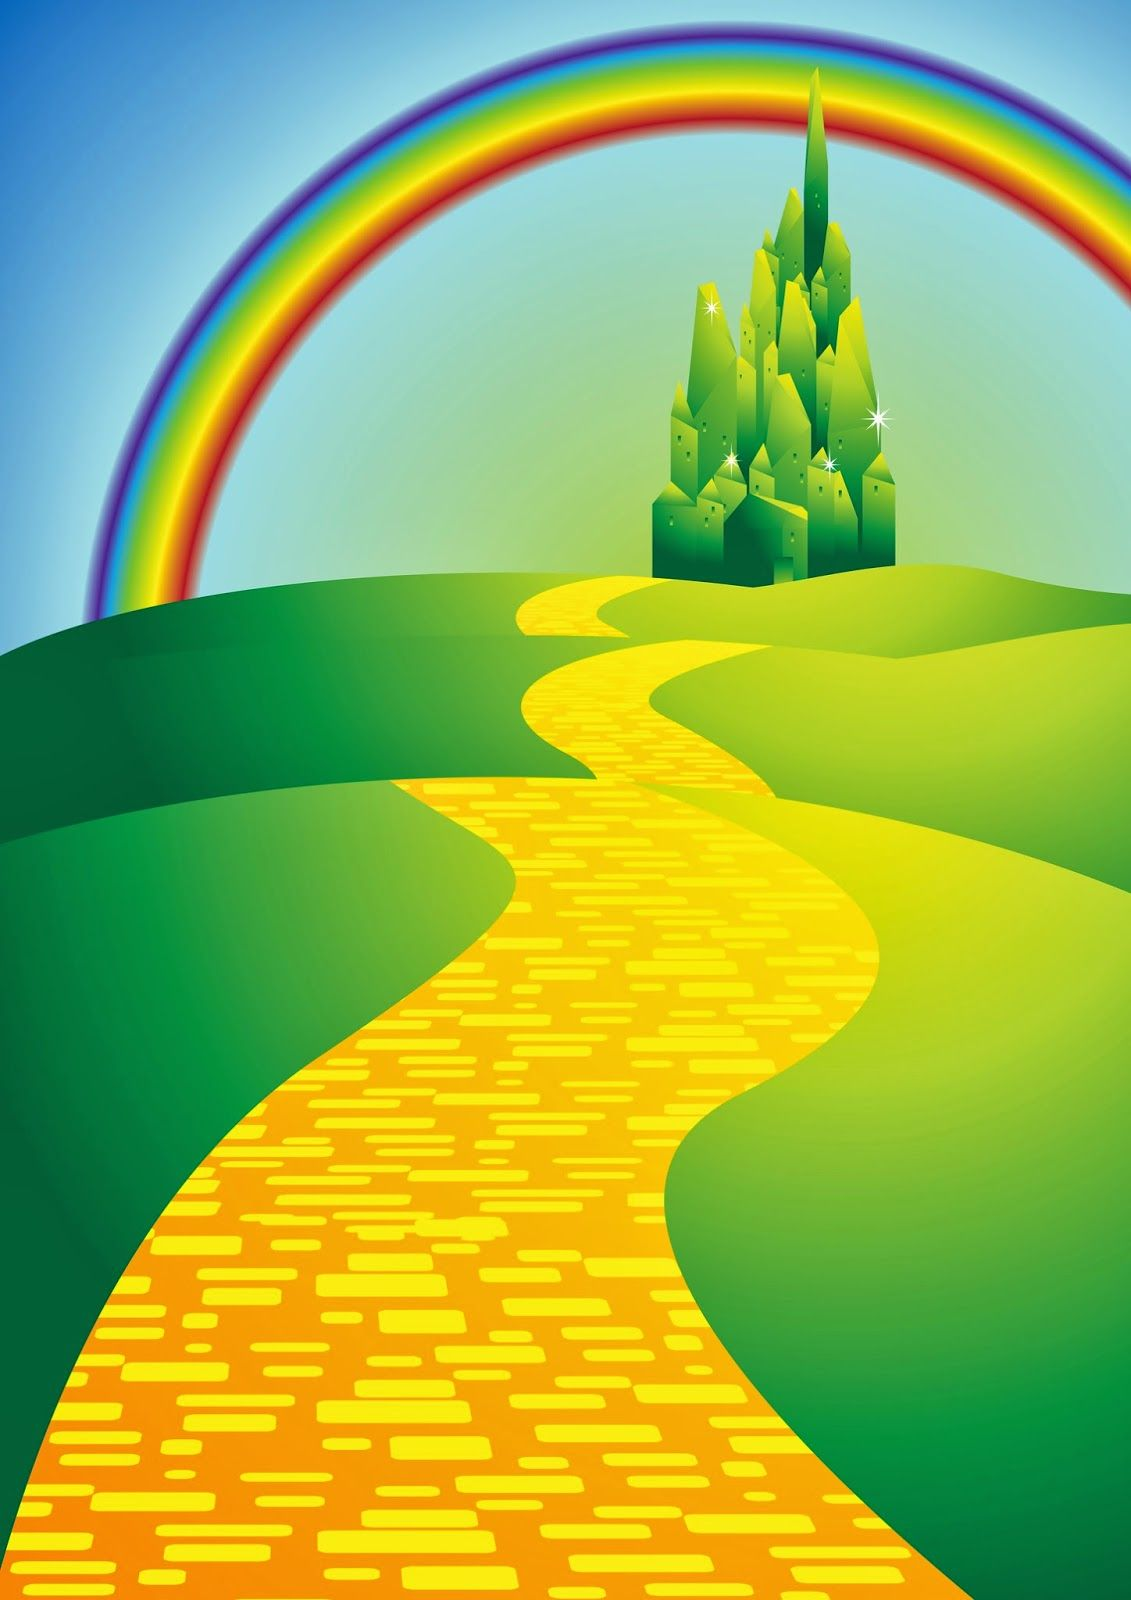 Wizard Of Oz Clipart yellow brick road 1.